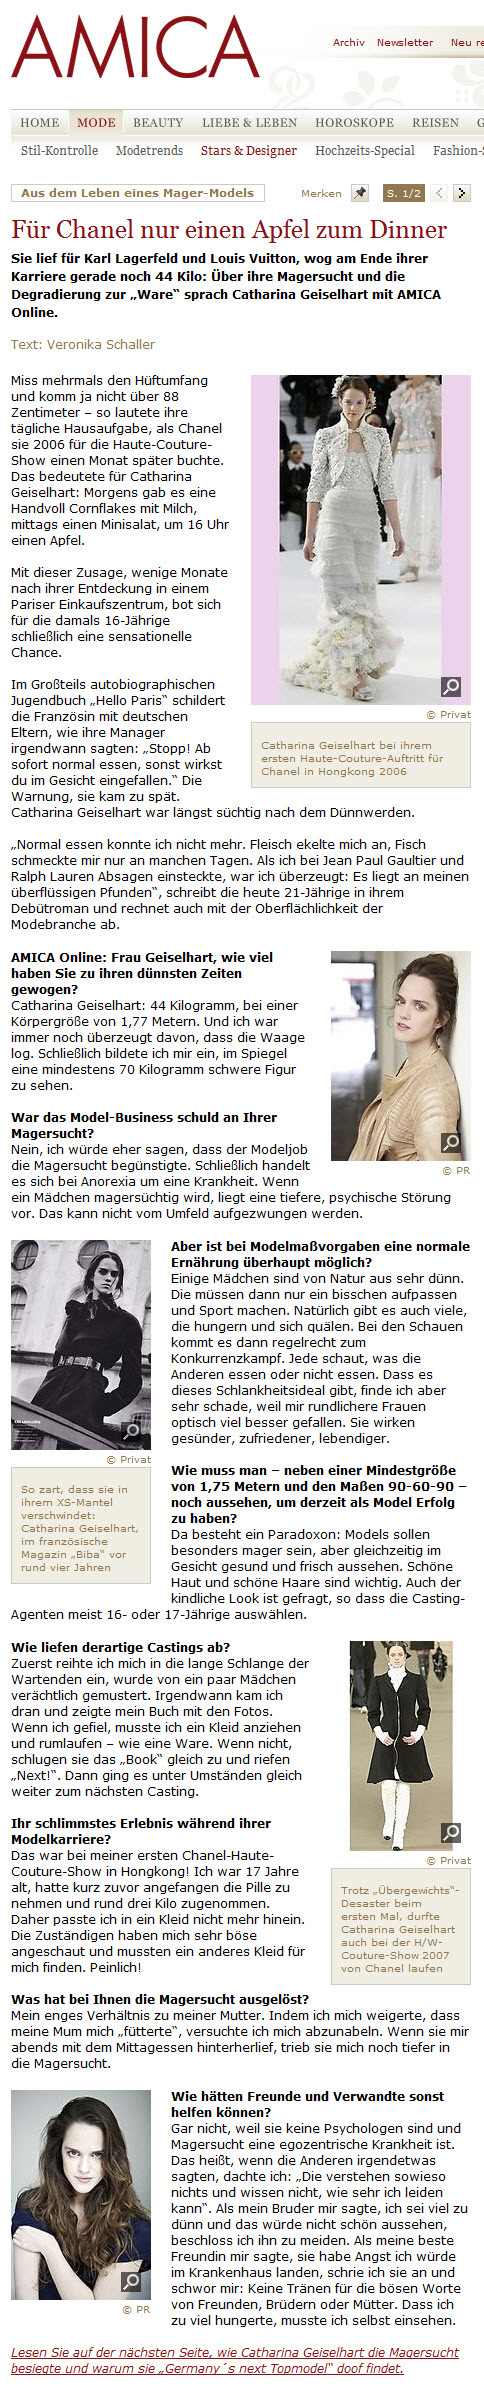 Amica Interview Teil 1